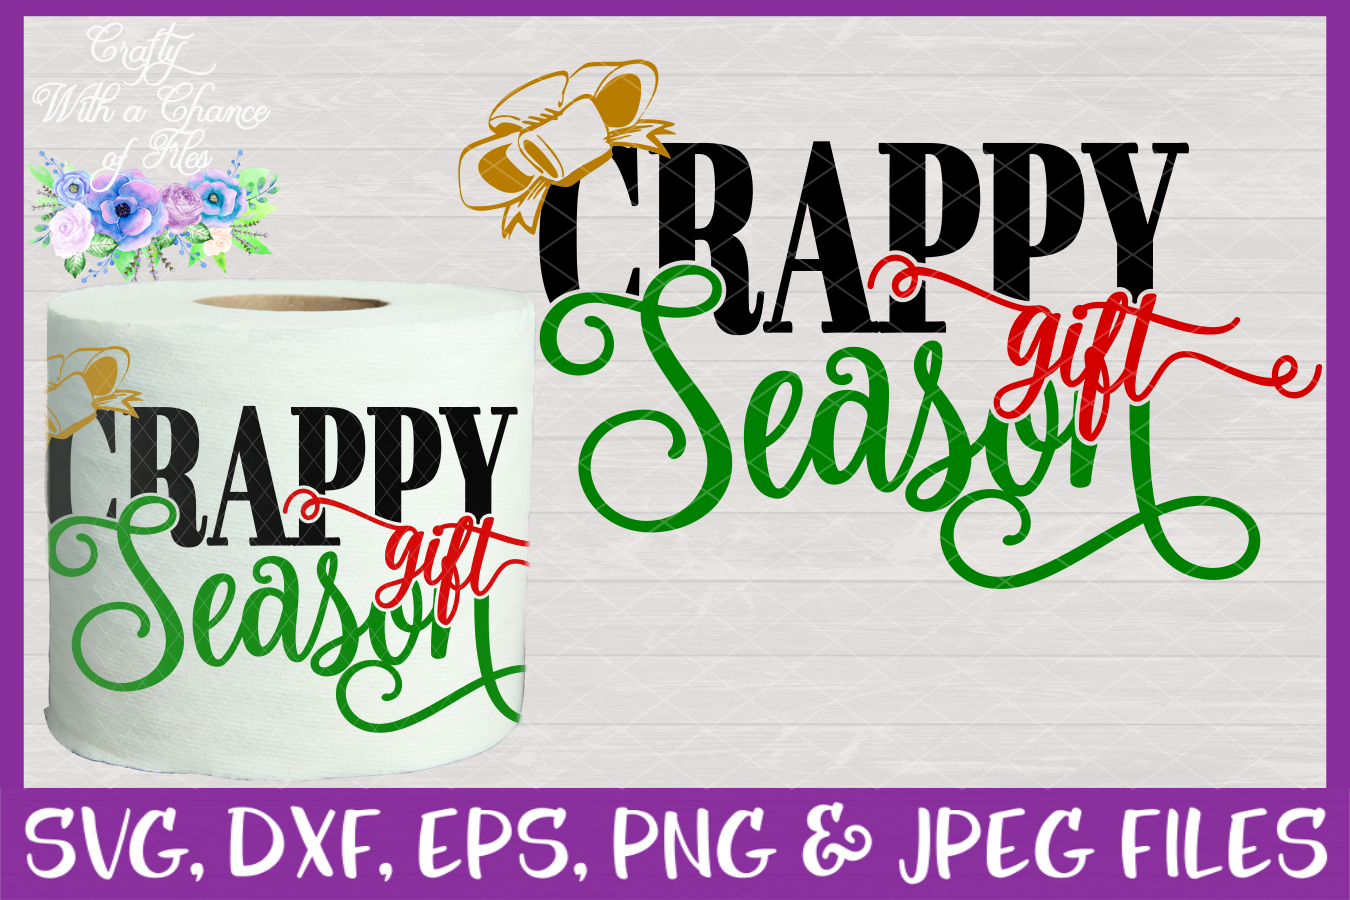 Crappy Gift Season SVG - Christmas Toilet Paper Design example image 1